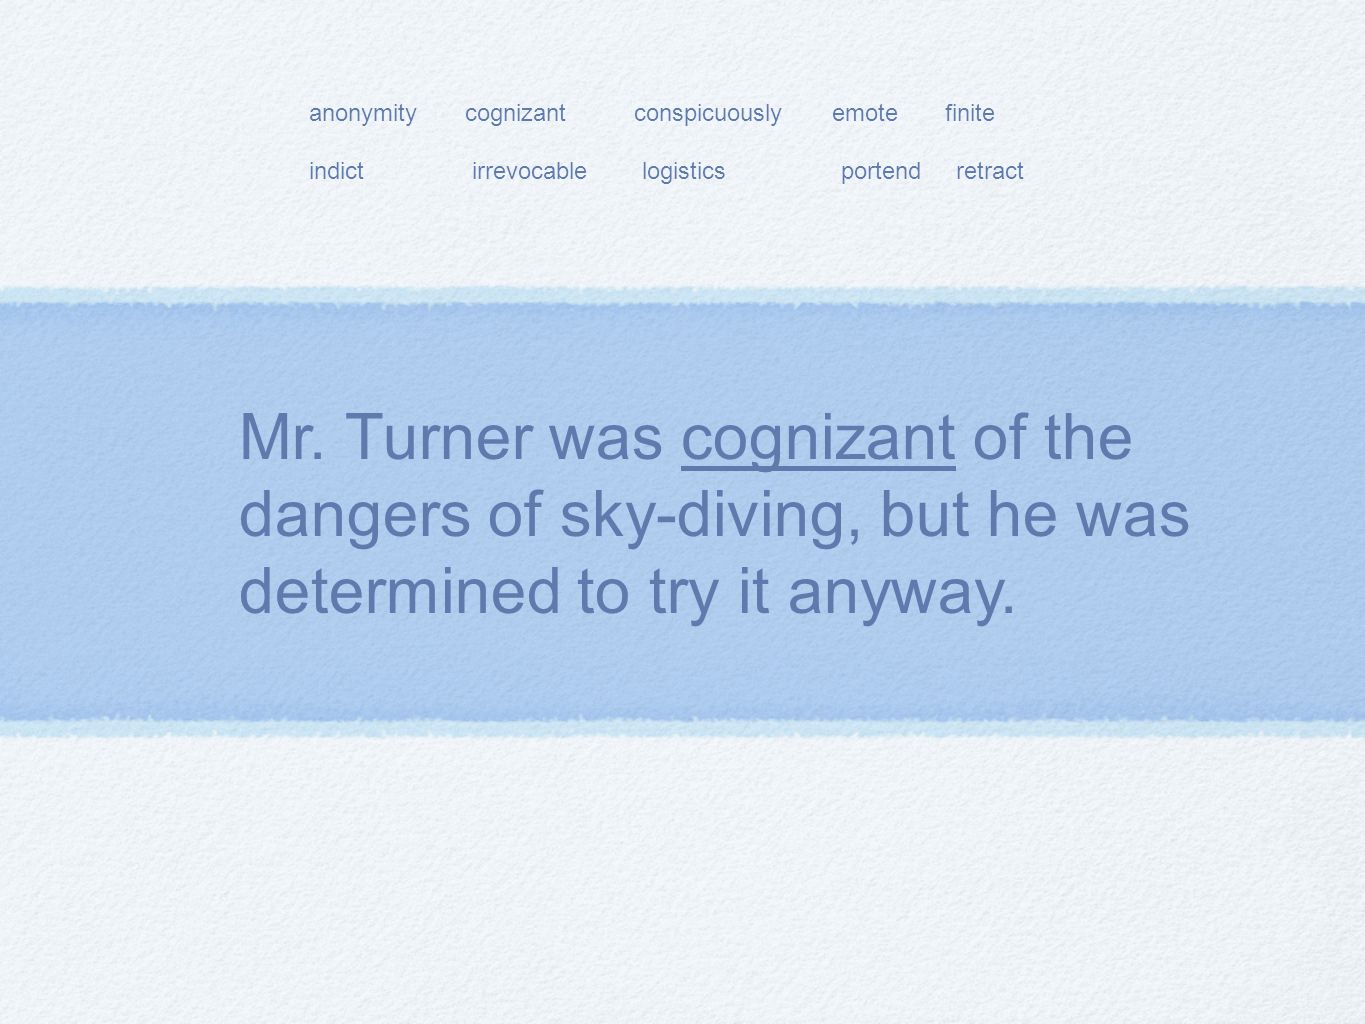 Mr. Turner was cognizant of the dangers of sky-diving, but he was determined to try it anyway.